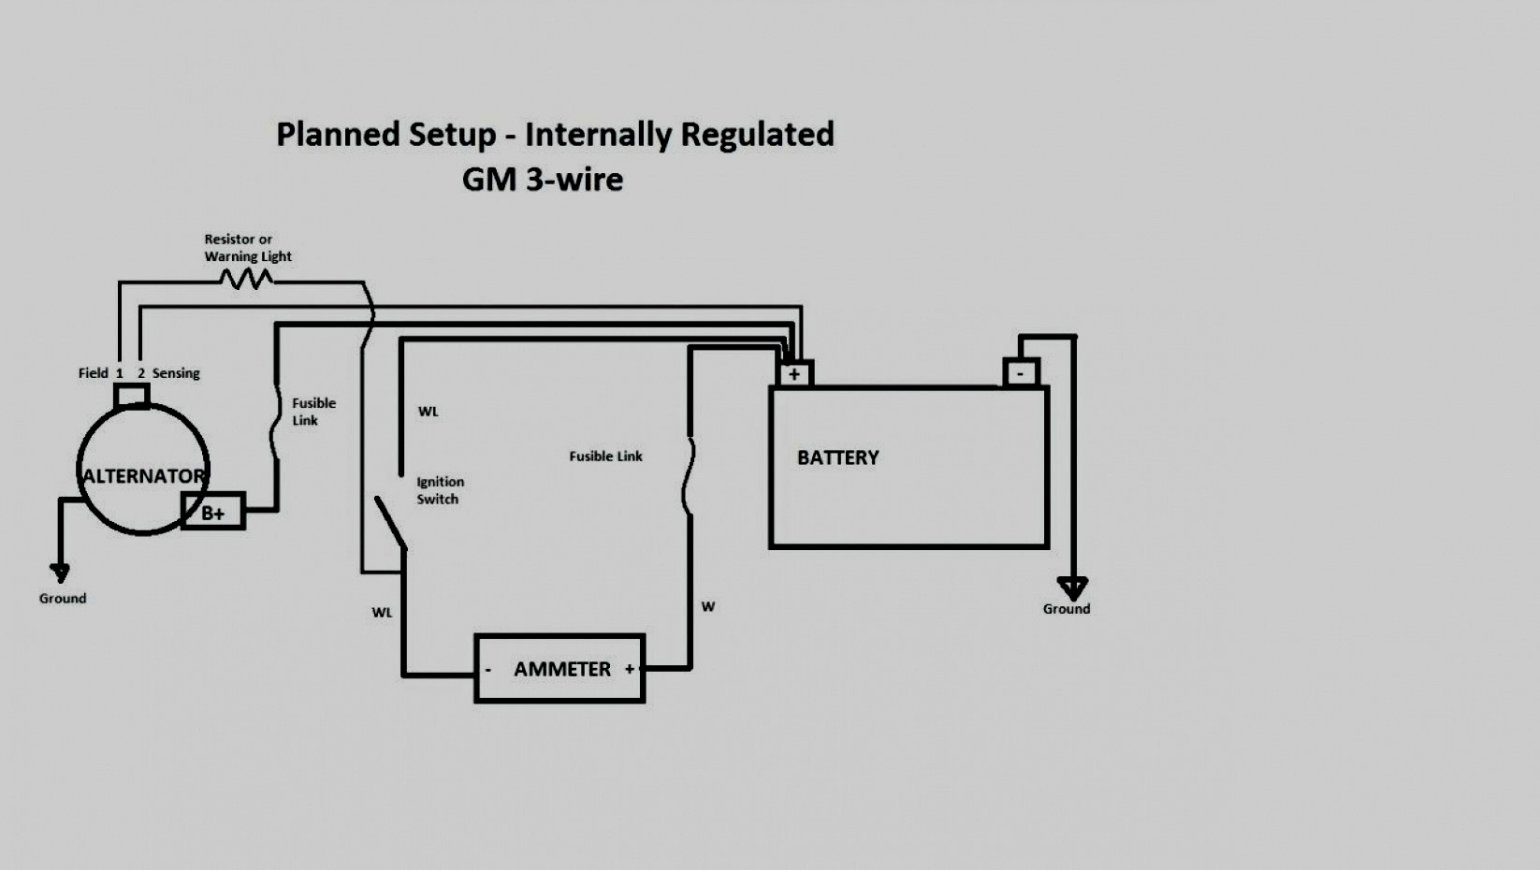 Gm 3 Wire Alternator Wiring Diagram | Wirings Diagram  Pin Internally Regulated Alternator Wiring Diagram on 1 wire alternator wiring, 12 volt alternator wiring, 3 wire alternator wiring, self exciting alternator wiring,